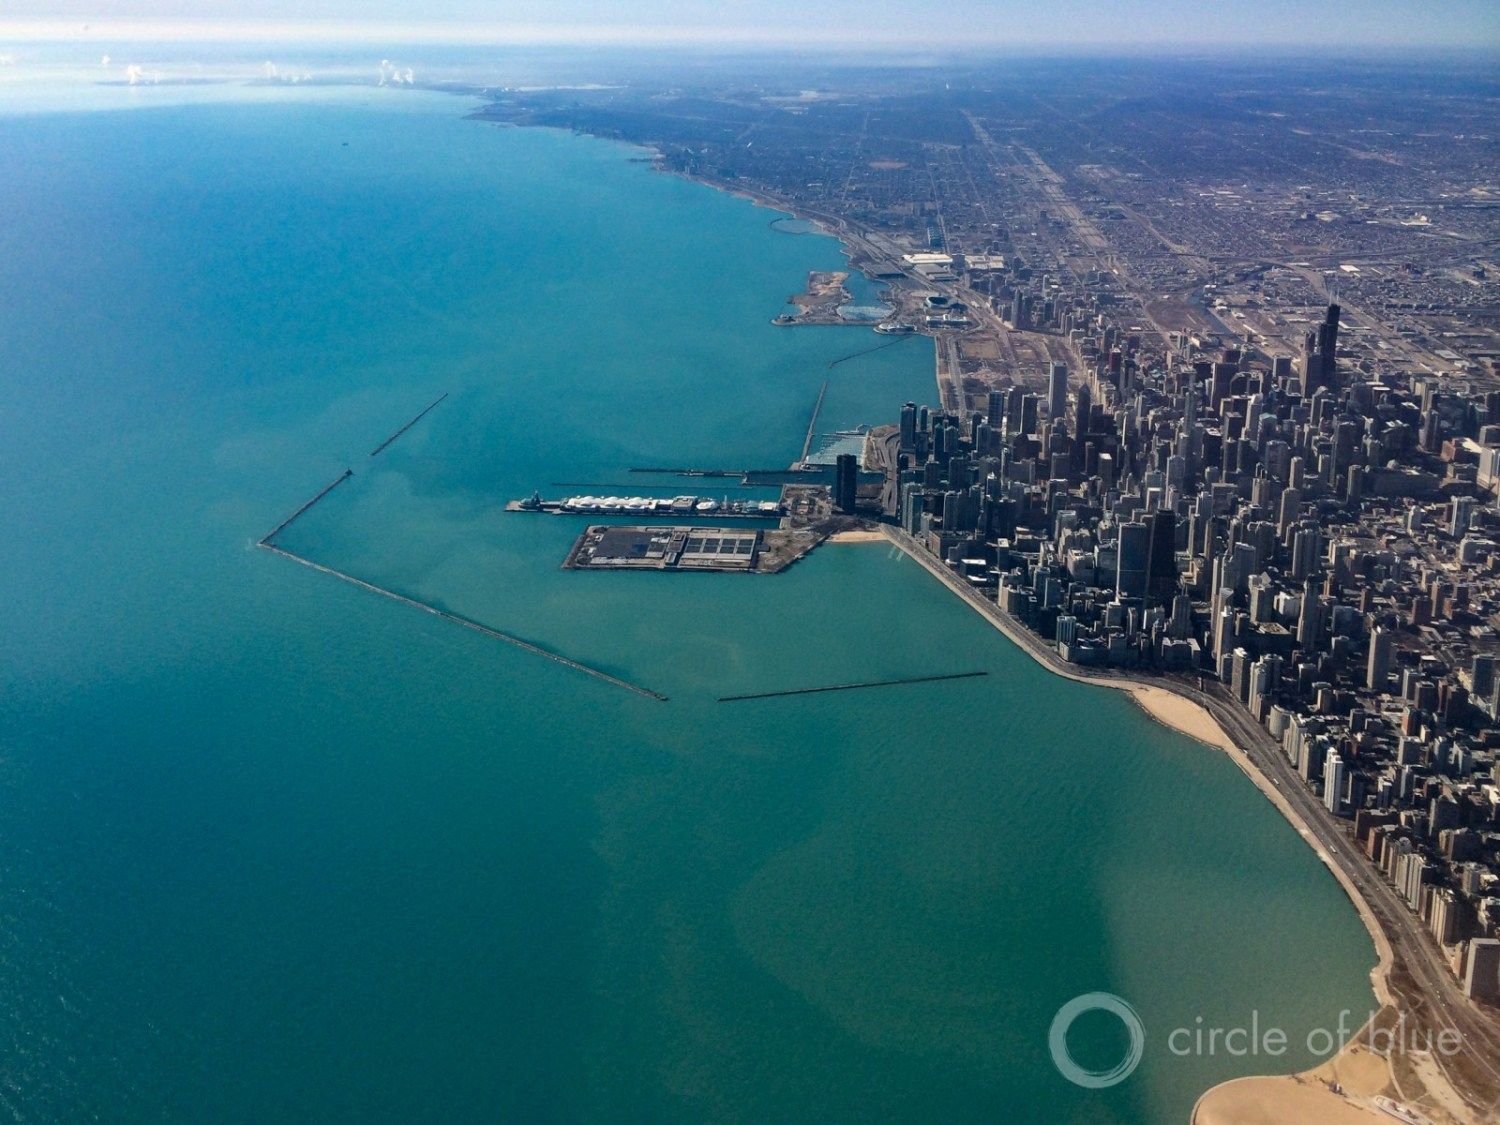 In a unanimous vote Tuesday in Chicago, the Great Lakes Compact Council approved the first out-of-basin diversion of Great Lakes water under the binational Great Lakes Compact. The decision grants Waukesha, Wisconsin access to Lake Michigan water for its municipal supplies. Photo © J. Carl Ganter / Circle of Blue